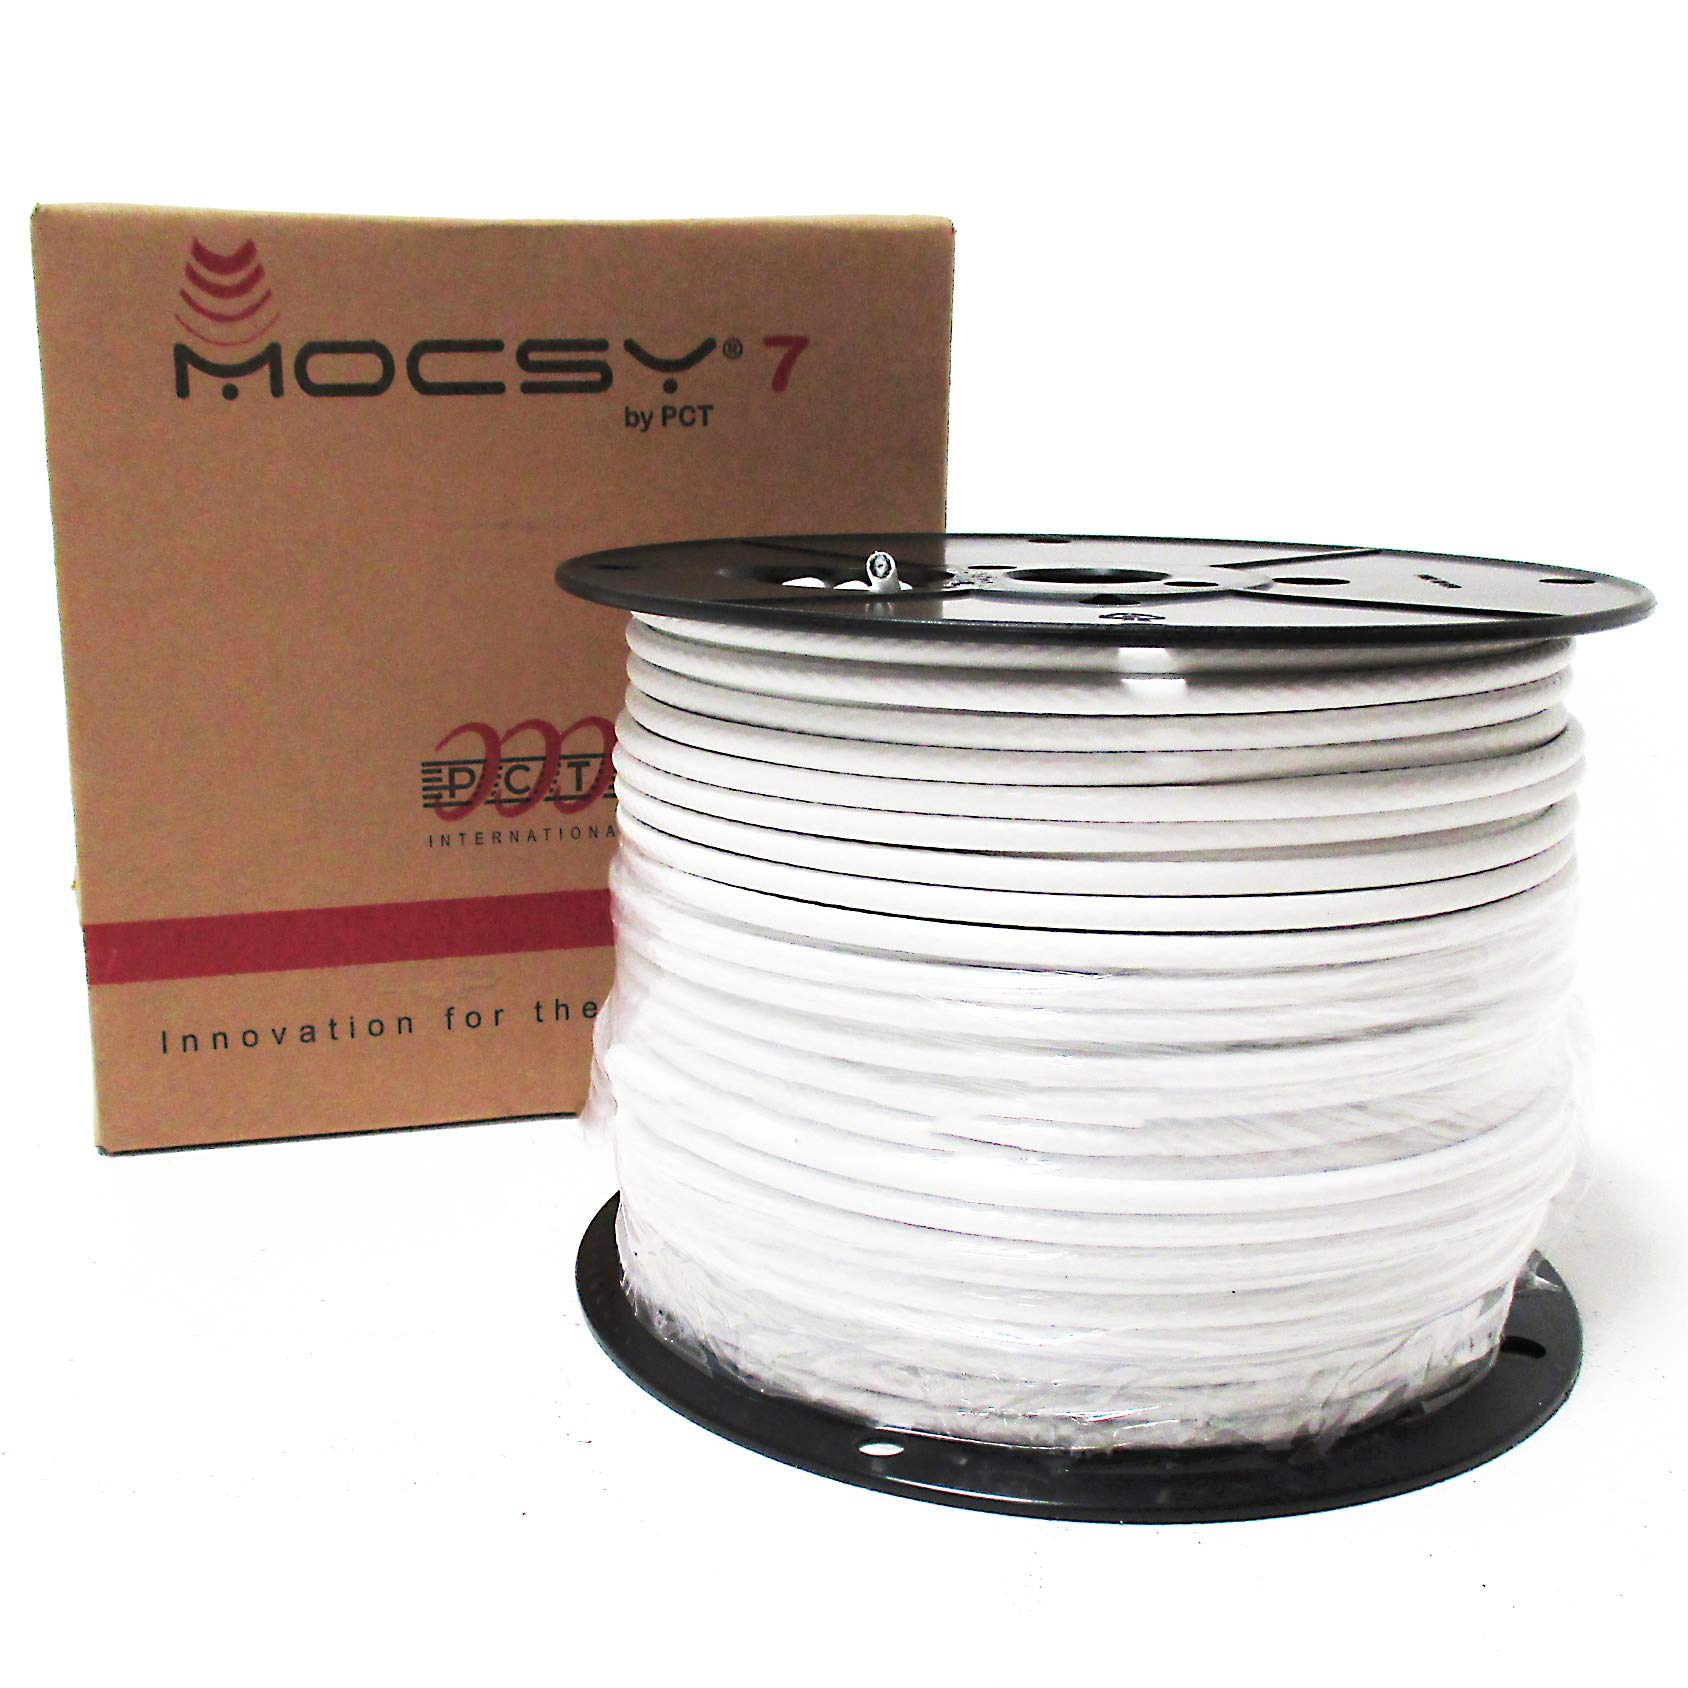 500ft INDOOR OUTDOOR WHITE RG6 COAXIAL CABLE UV COATED PVC JACKET 18AWG SHIELDED PROFESSIONAL GRADE FOR HDTV DIGITAL CABLE HI-DEF SATELLITE COAX BULK PAYOUT REEL IN BOX by PCT International